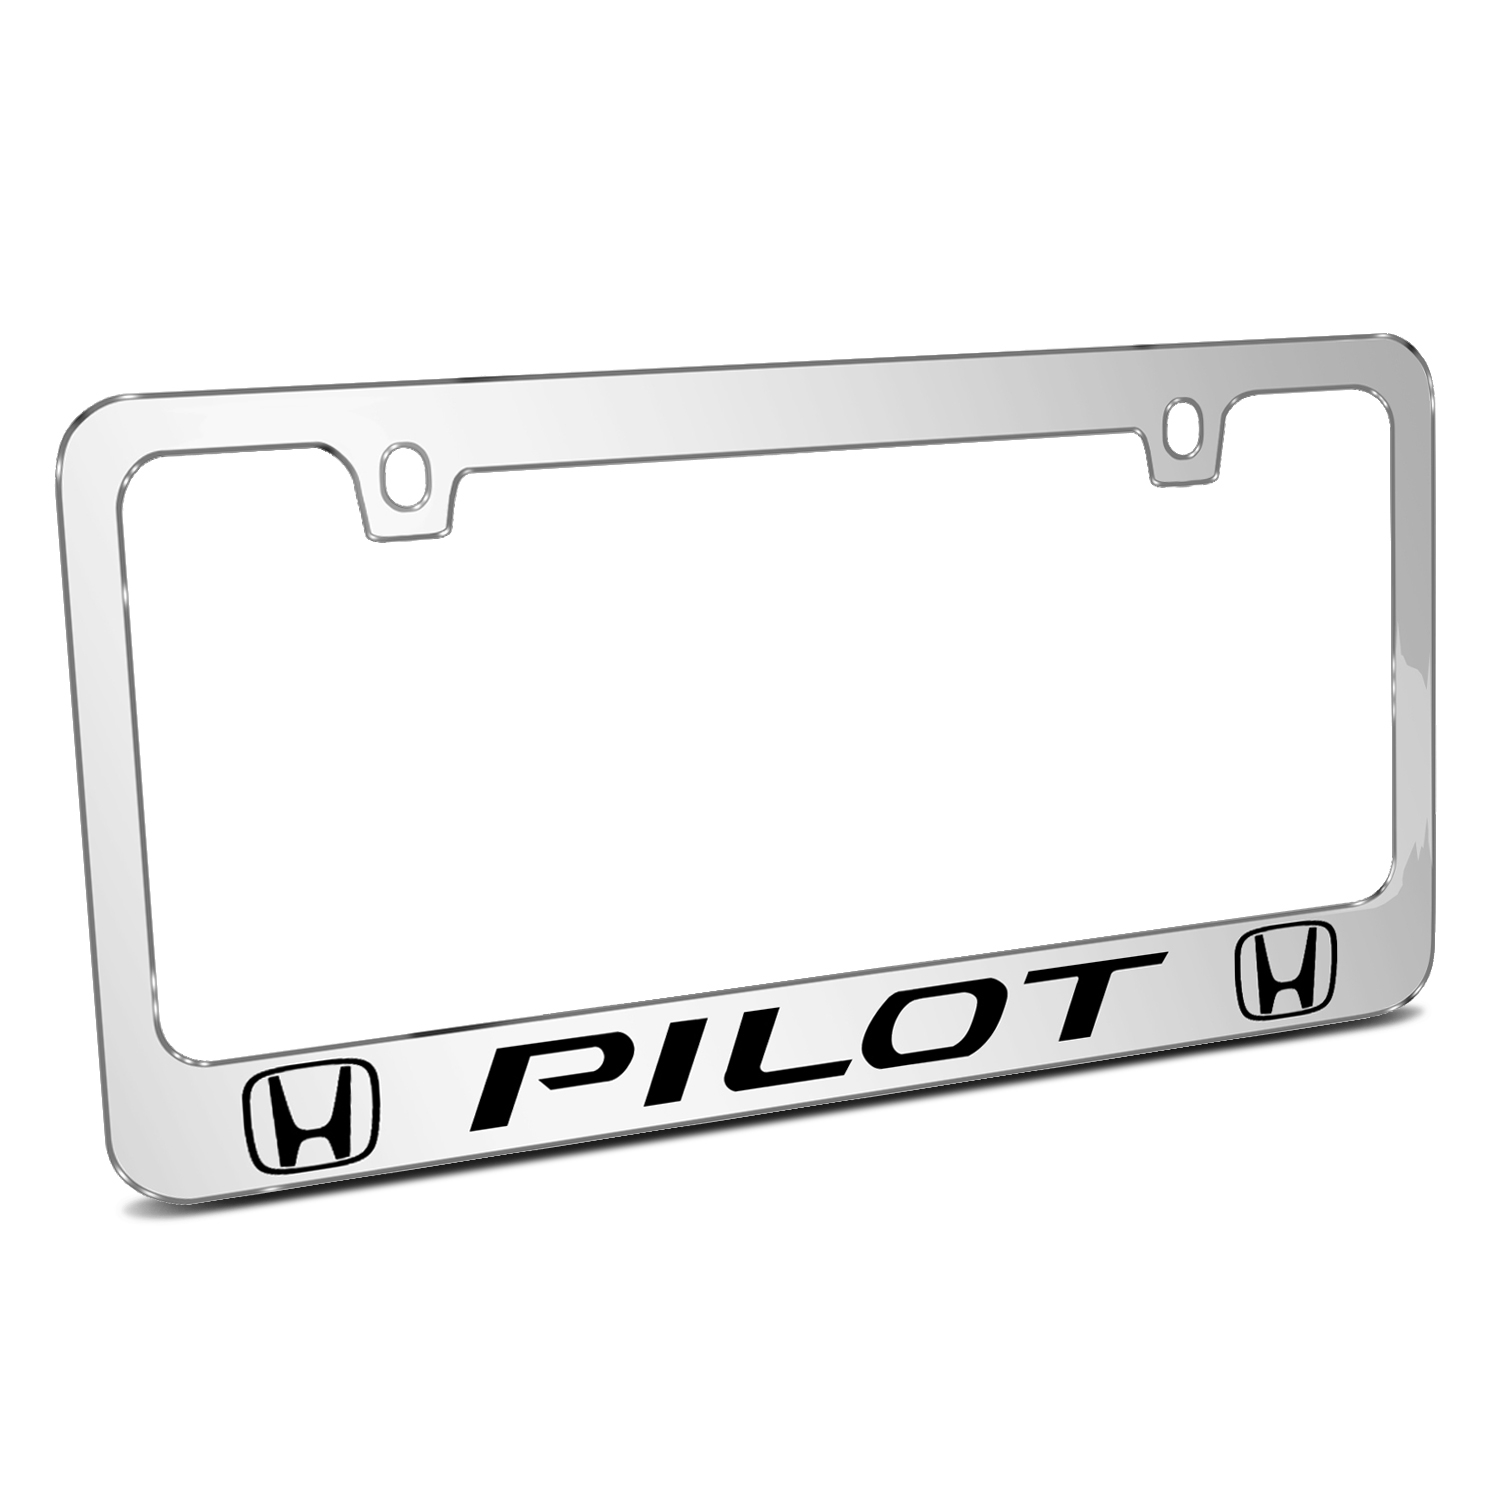 Honda Pilot Dual Logo Mirror Chrome Metal License Plate Frame